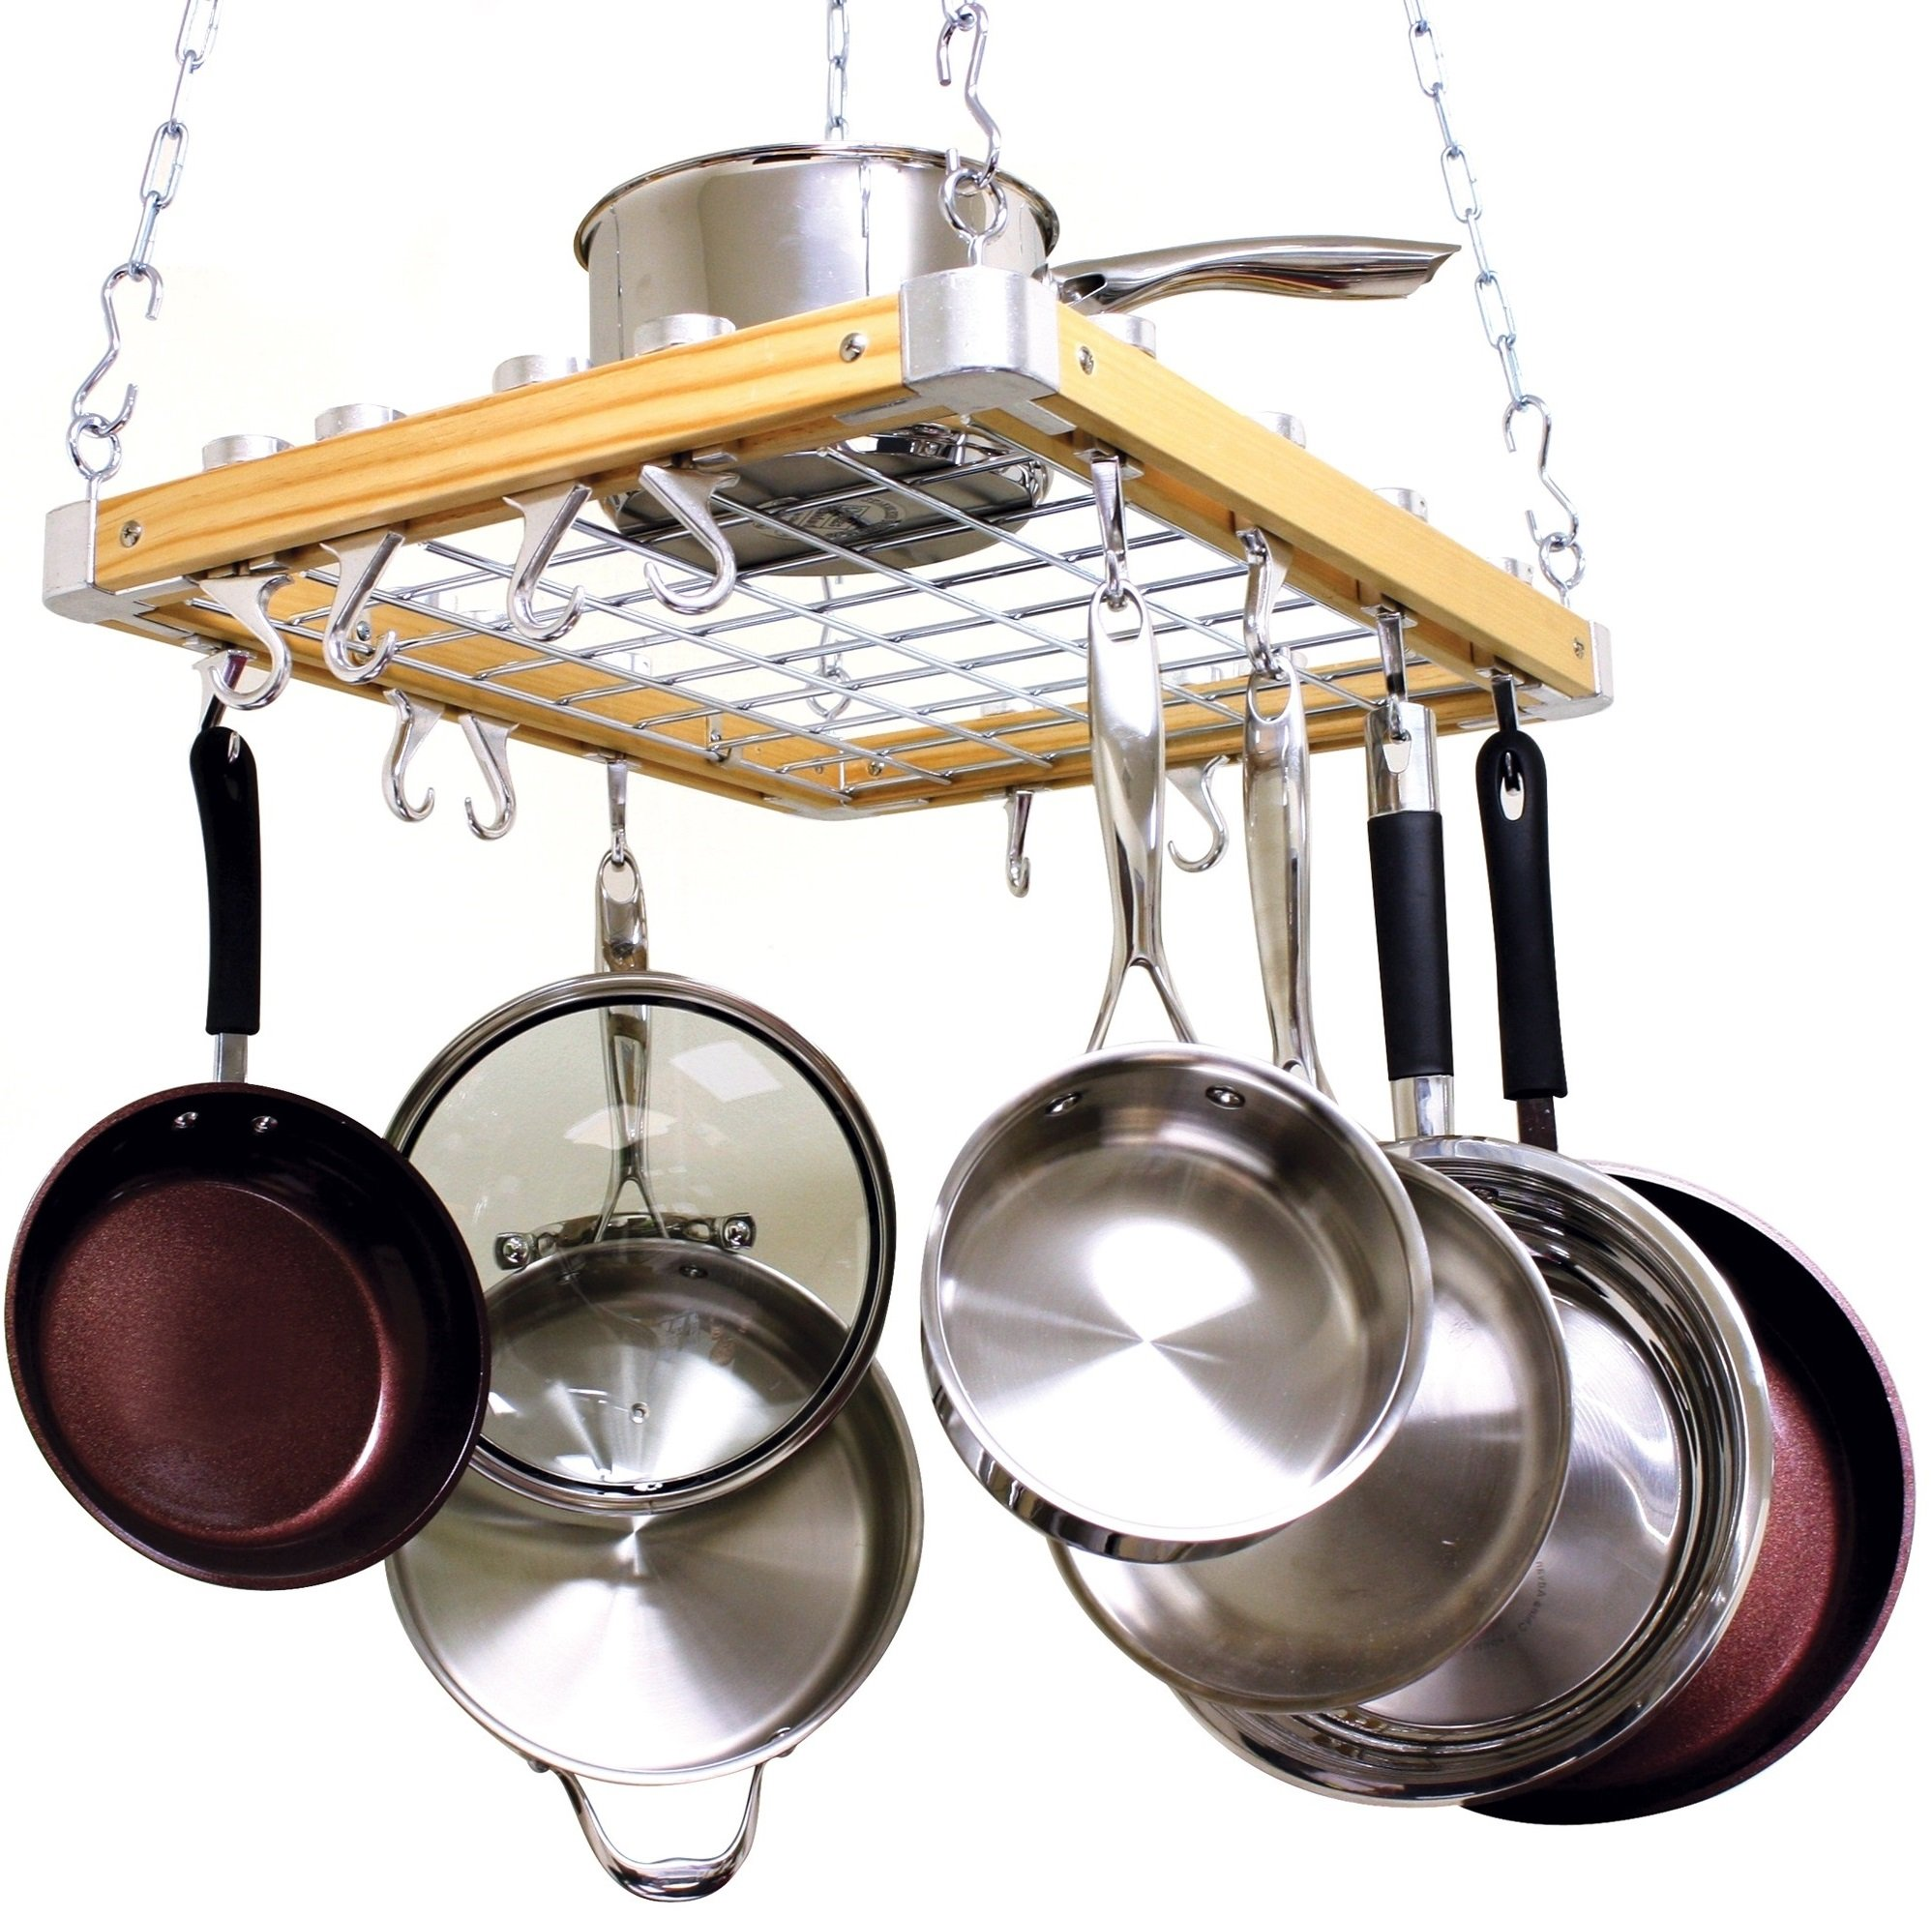 Cooks Standard Ceiling Mounted Wooden Pot Rack, 24 by 18-Inch by Cooks Standard